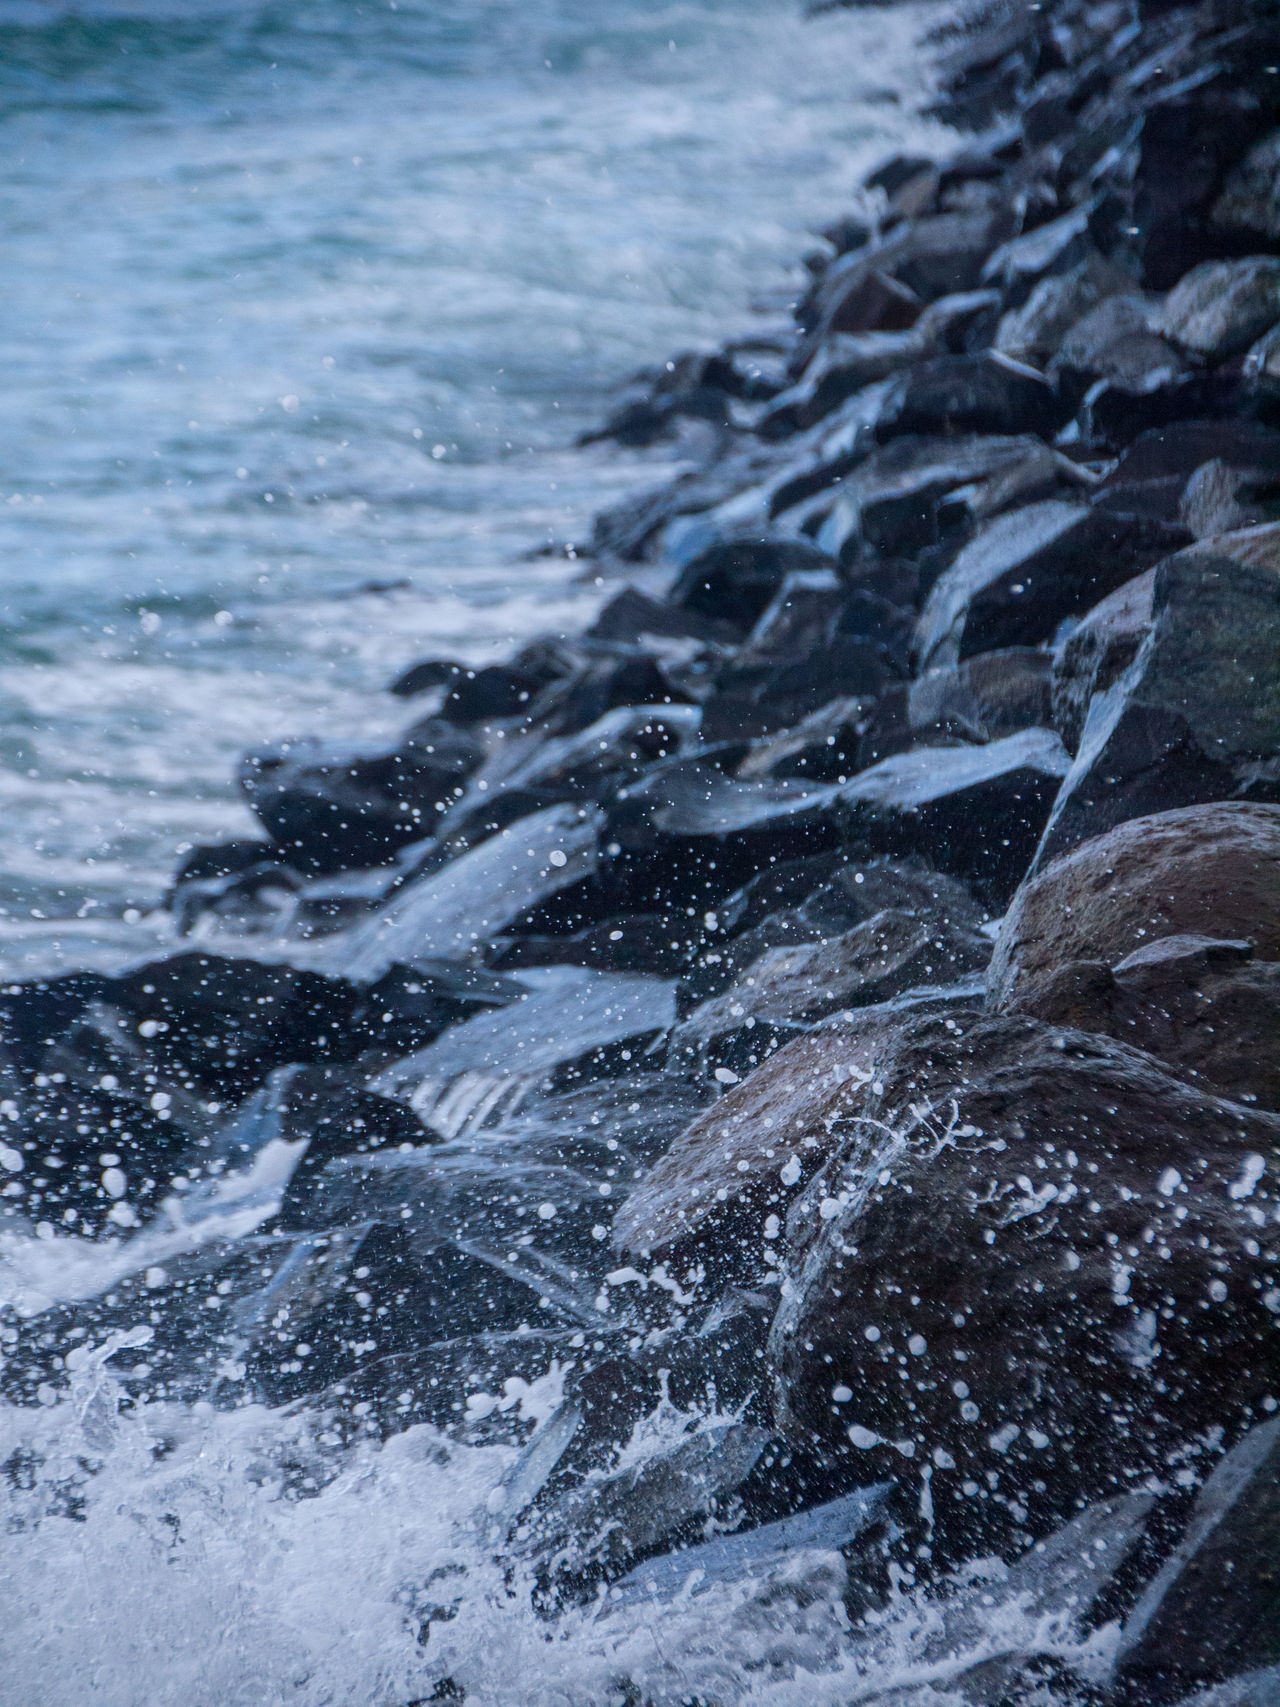 Beauty In Nature Close-up Day Nature No People Outdoors Rock - Object Rocky Rocky Beach Sea Splash Water Wave